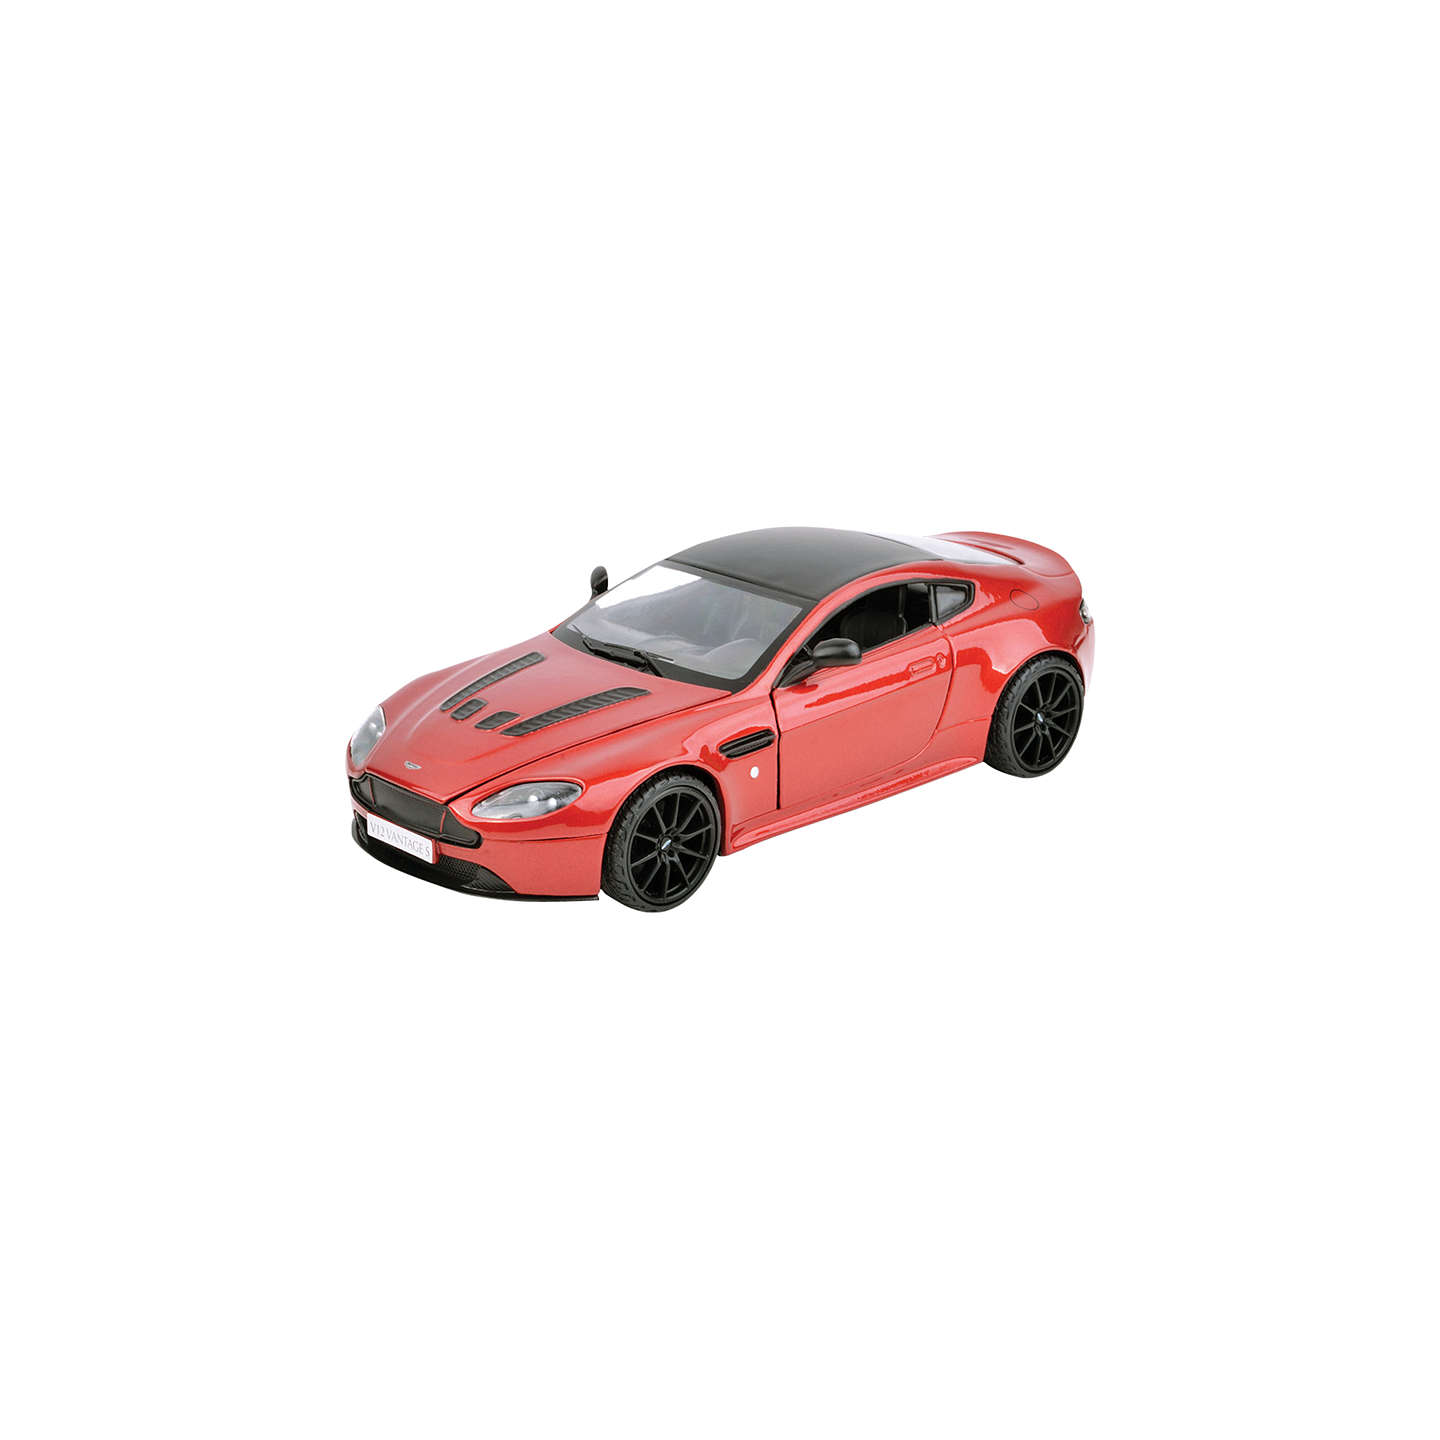 BuyJohn Lewis Aston Martin Vantage Performance Car Online at johnlewis.com